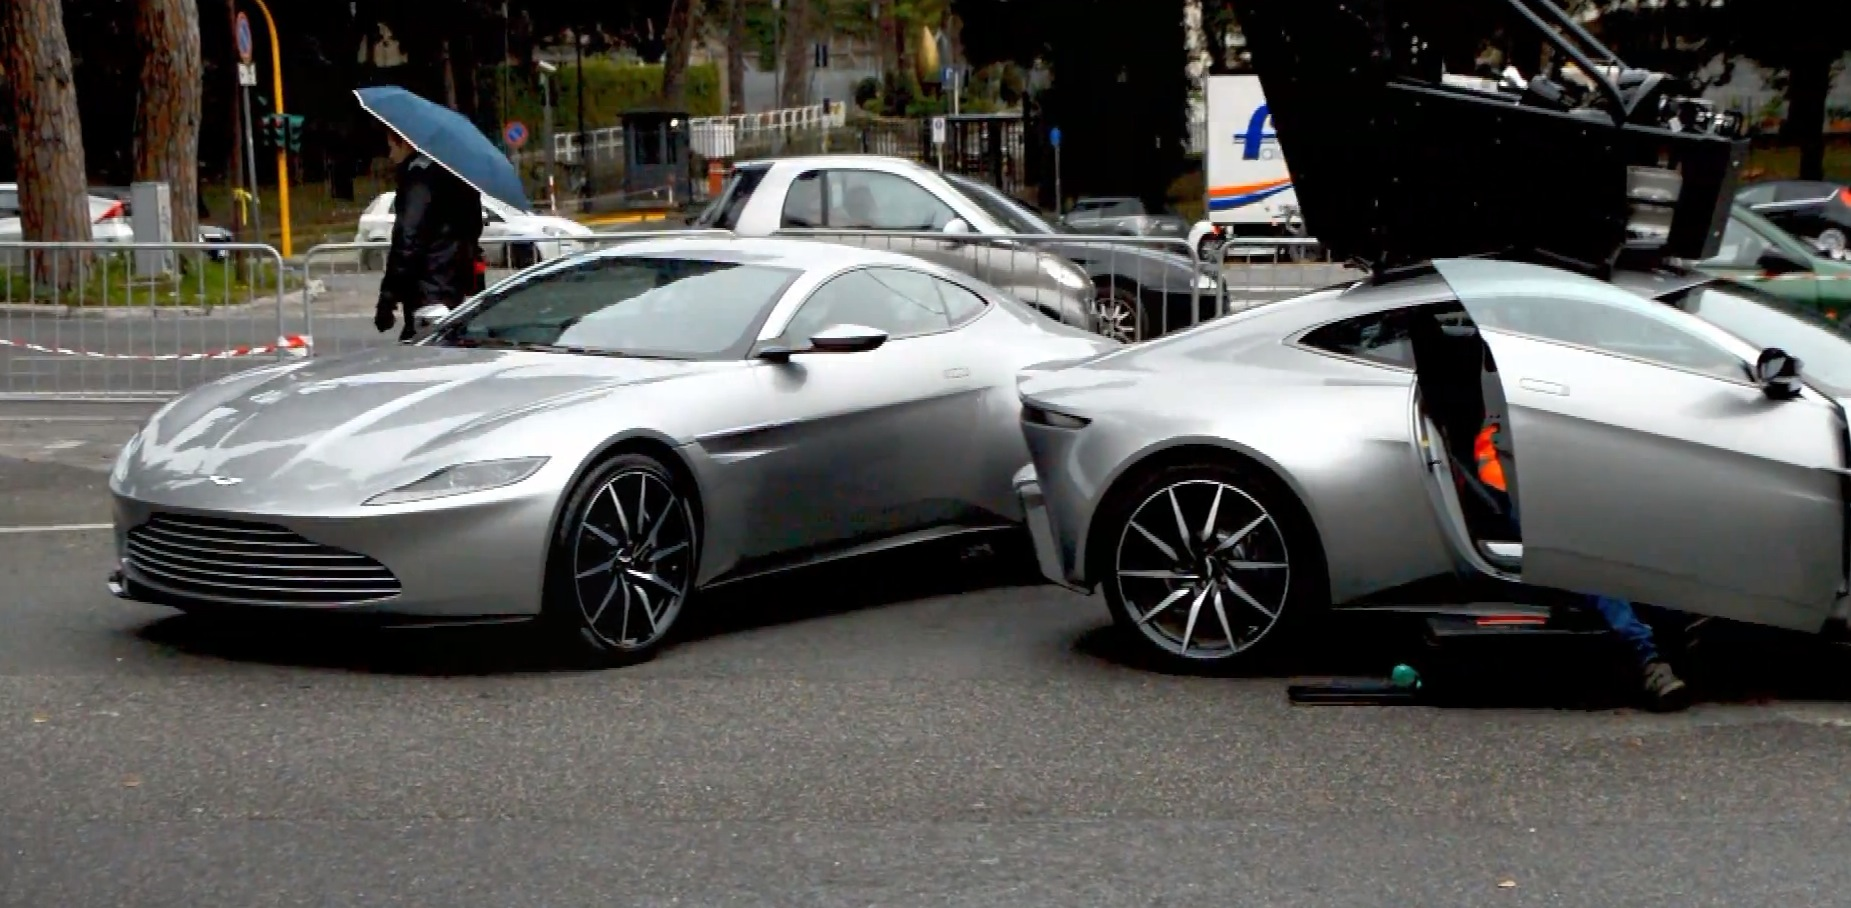 Several Aston Martin Db10 Concepts Seen In Rome During